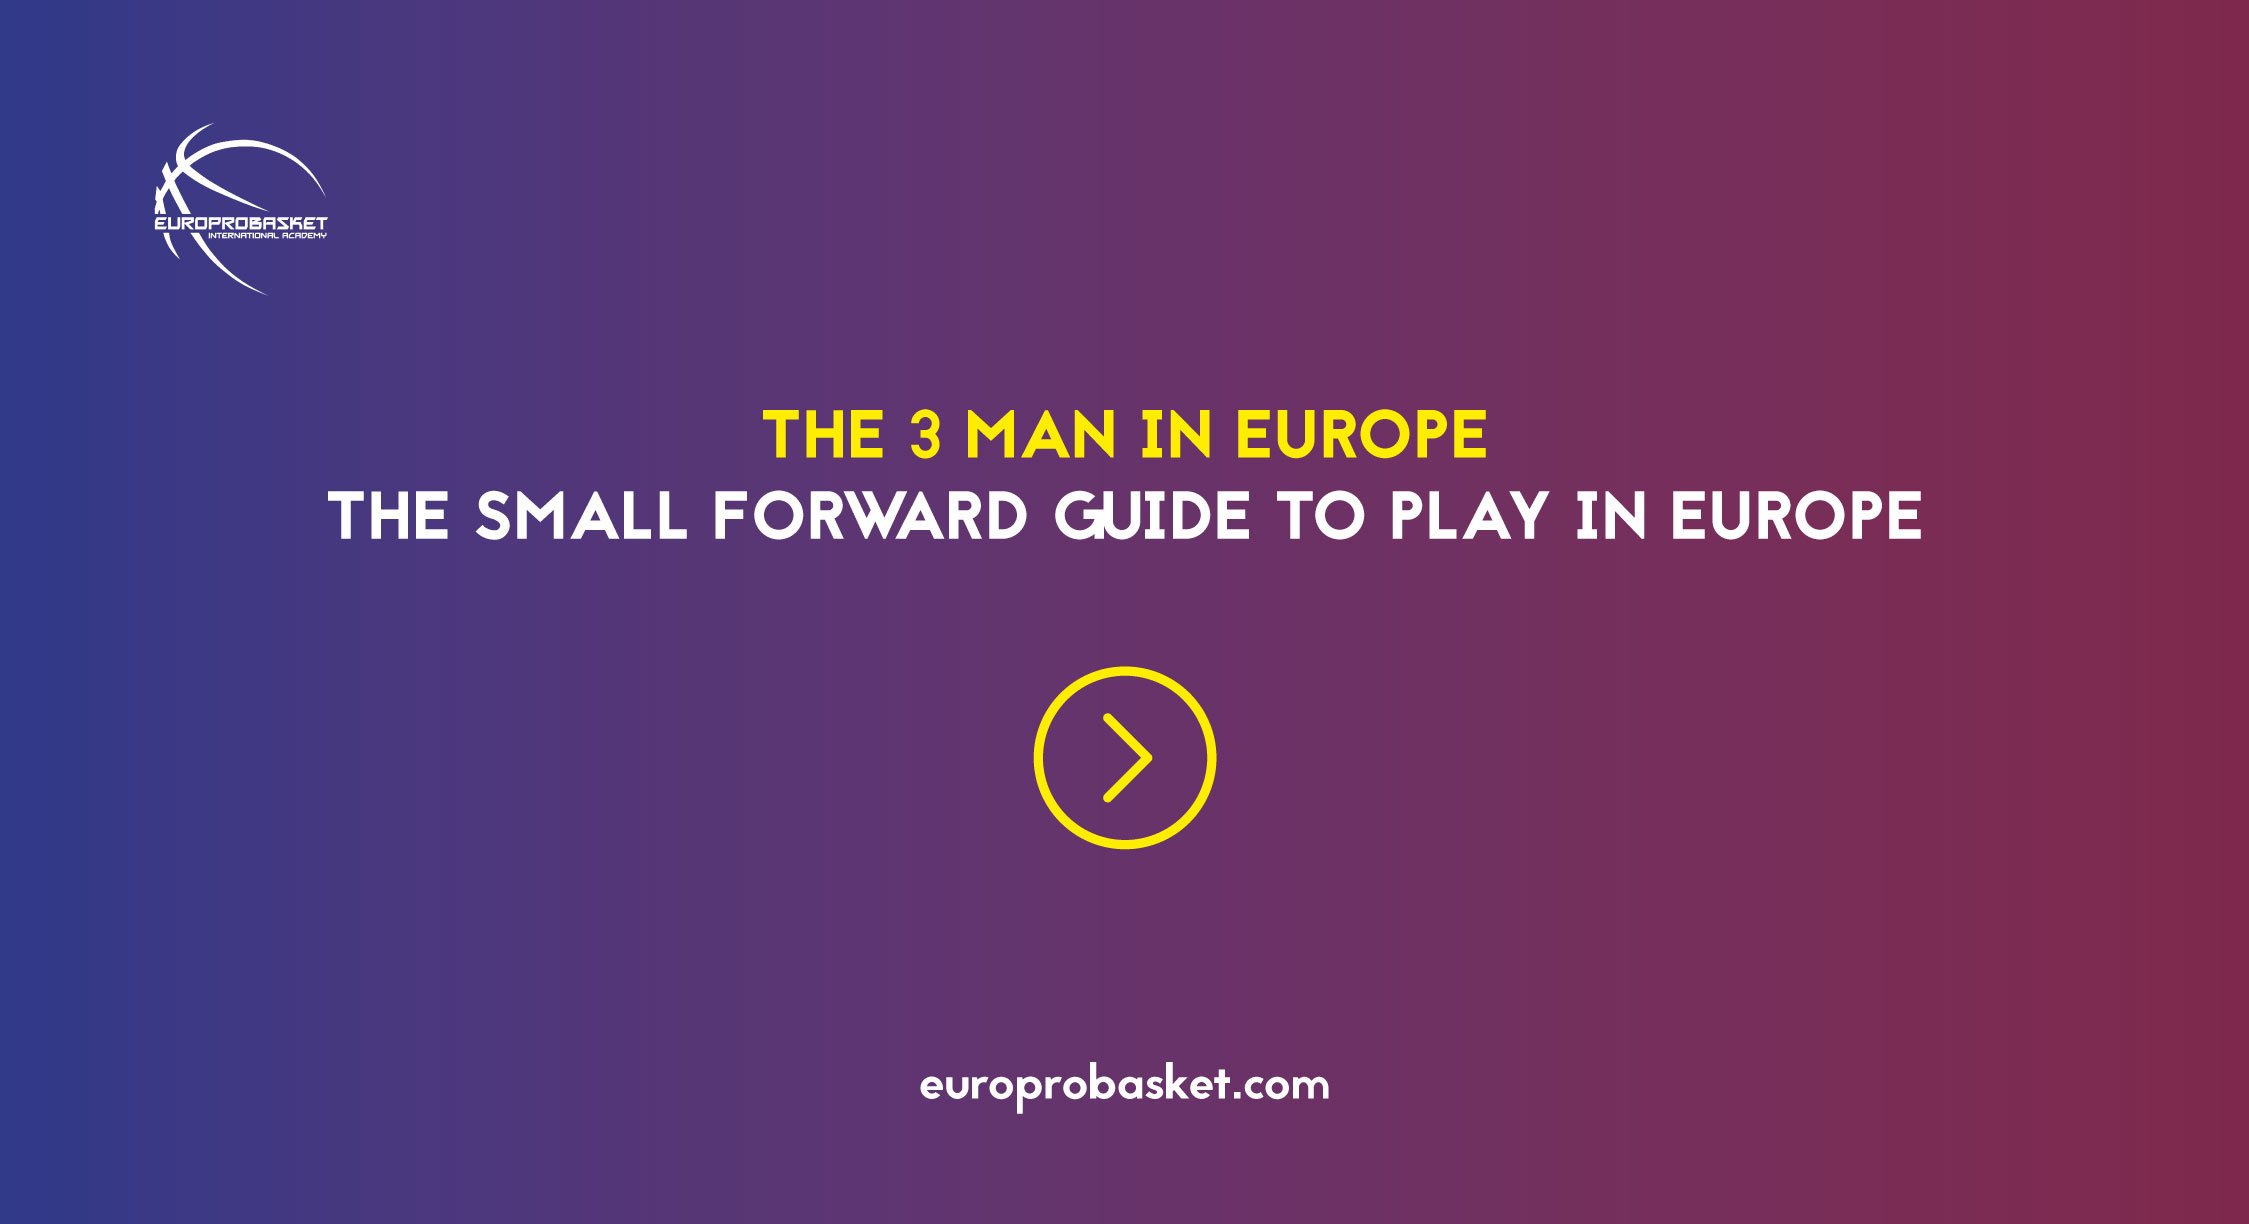 THE SMALL FORWARD GUIDE TO PLAY IN EUROPE